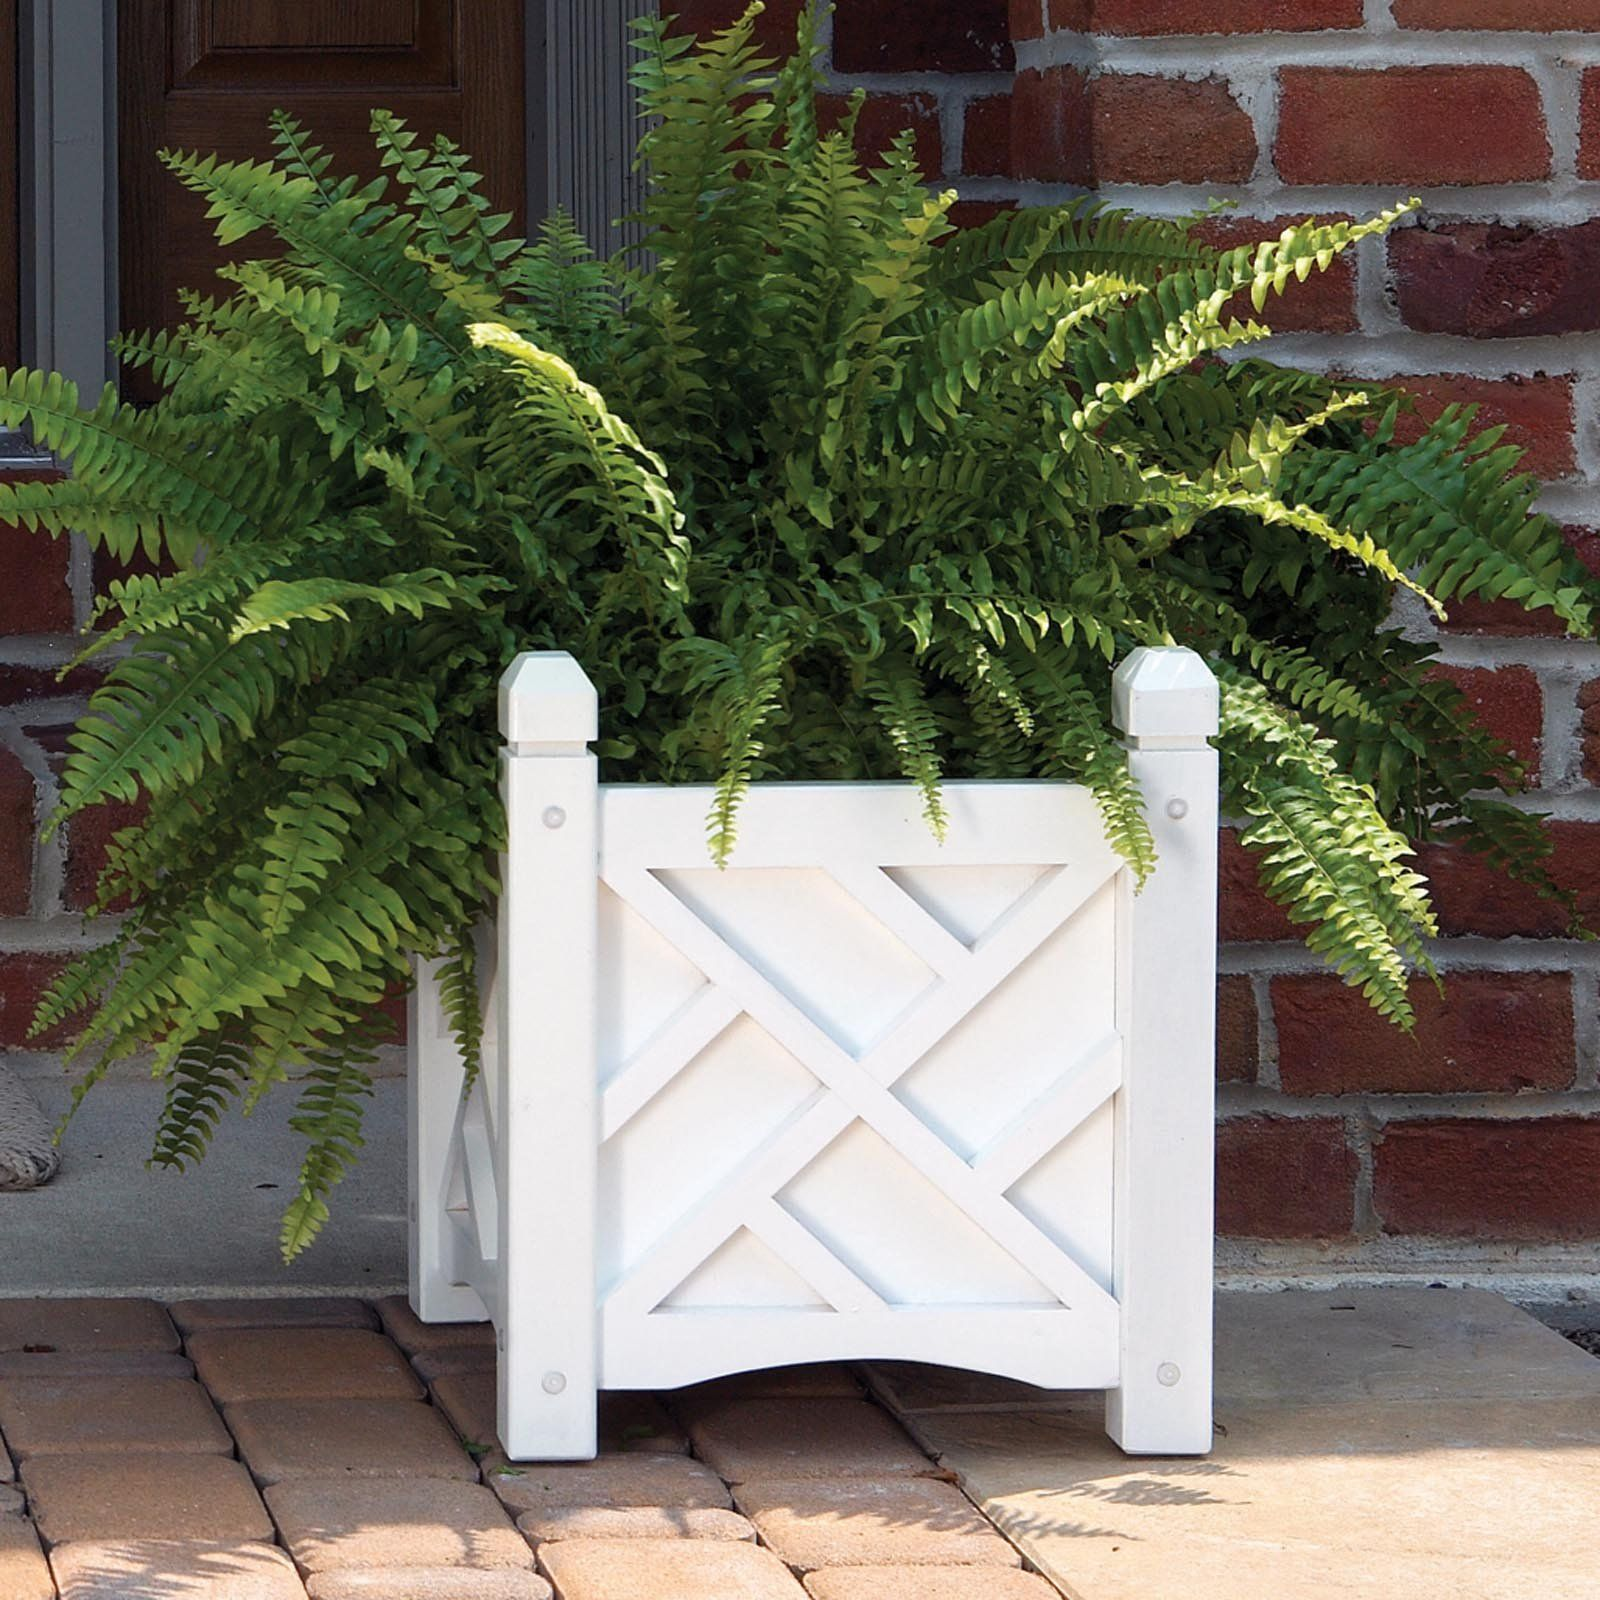 White Outdoor Patio 36 Deluxe Large Garden Planter Flower: Have To Have It. Solid Wood Chippendale Planter Box $56.99